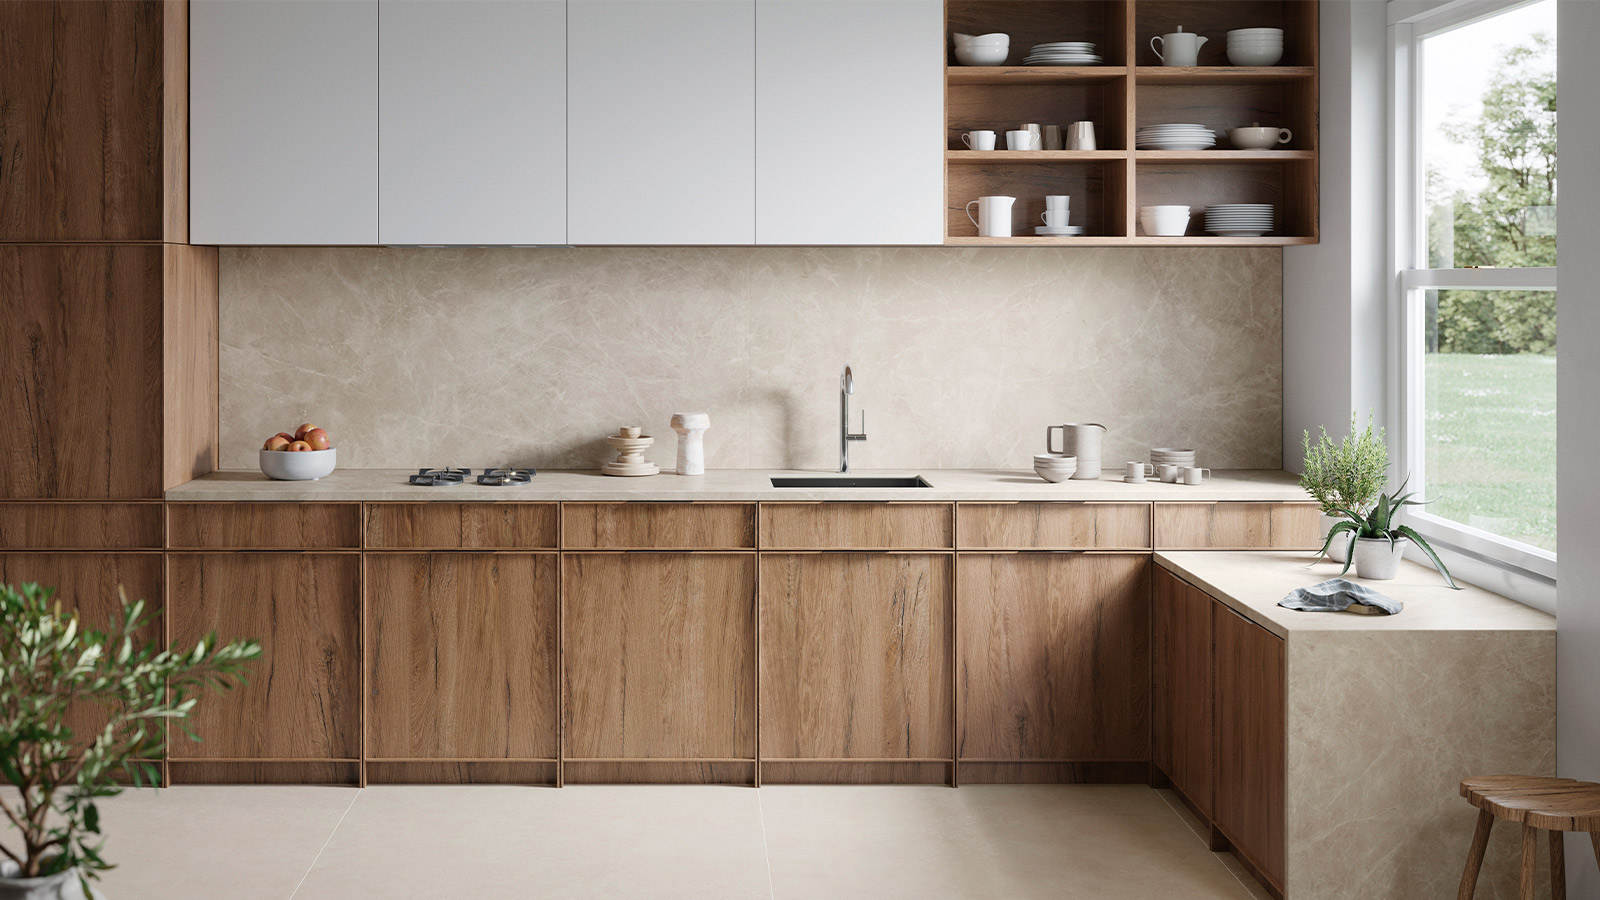 Kitchen wall tiles; 5 useful ideas for tiling your kitchen walls